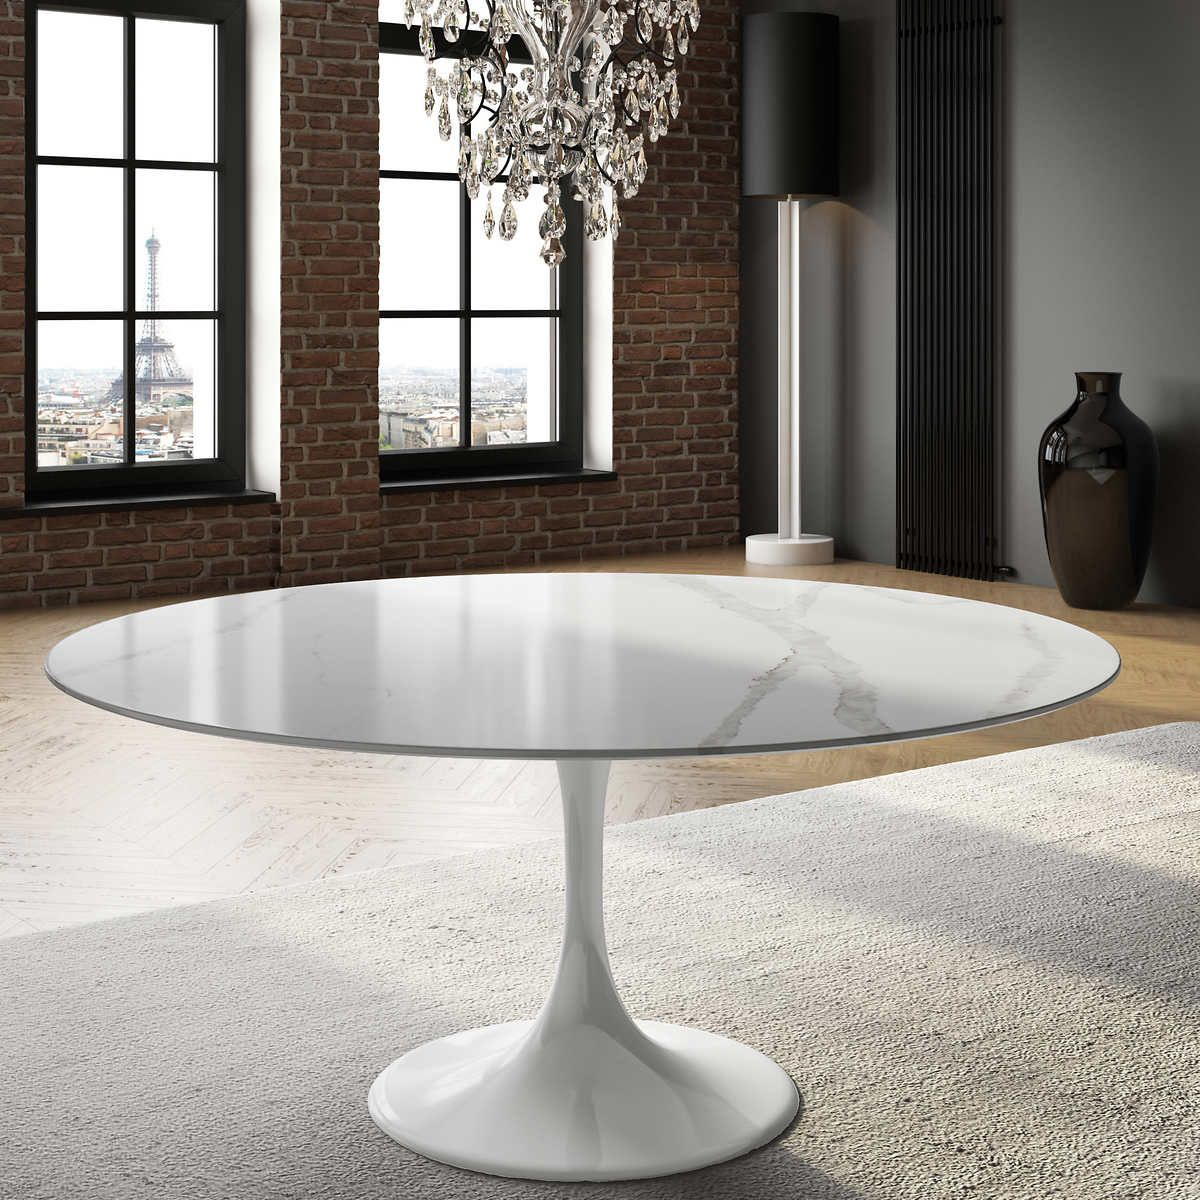 Orchid White Round Table In 2020 White Round Tables White Round